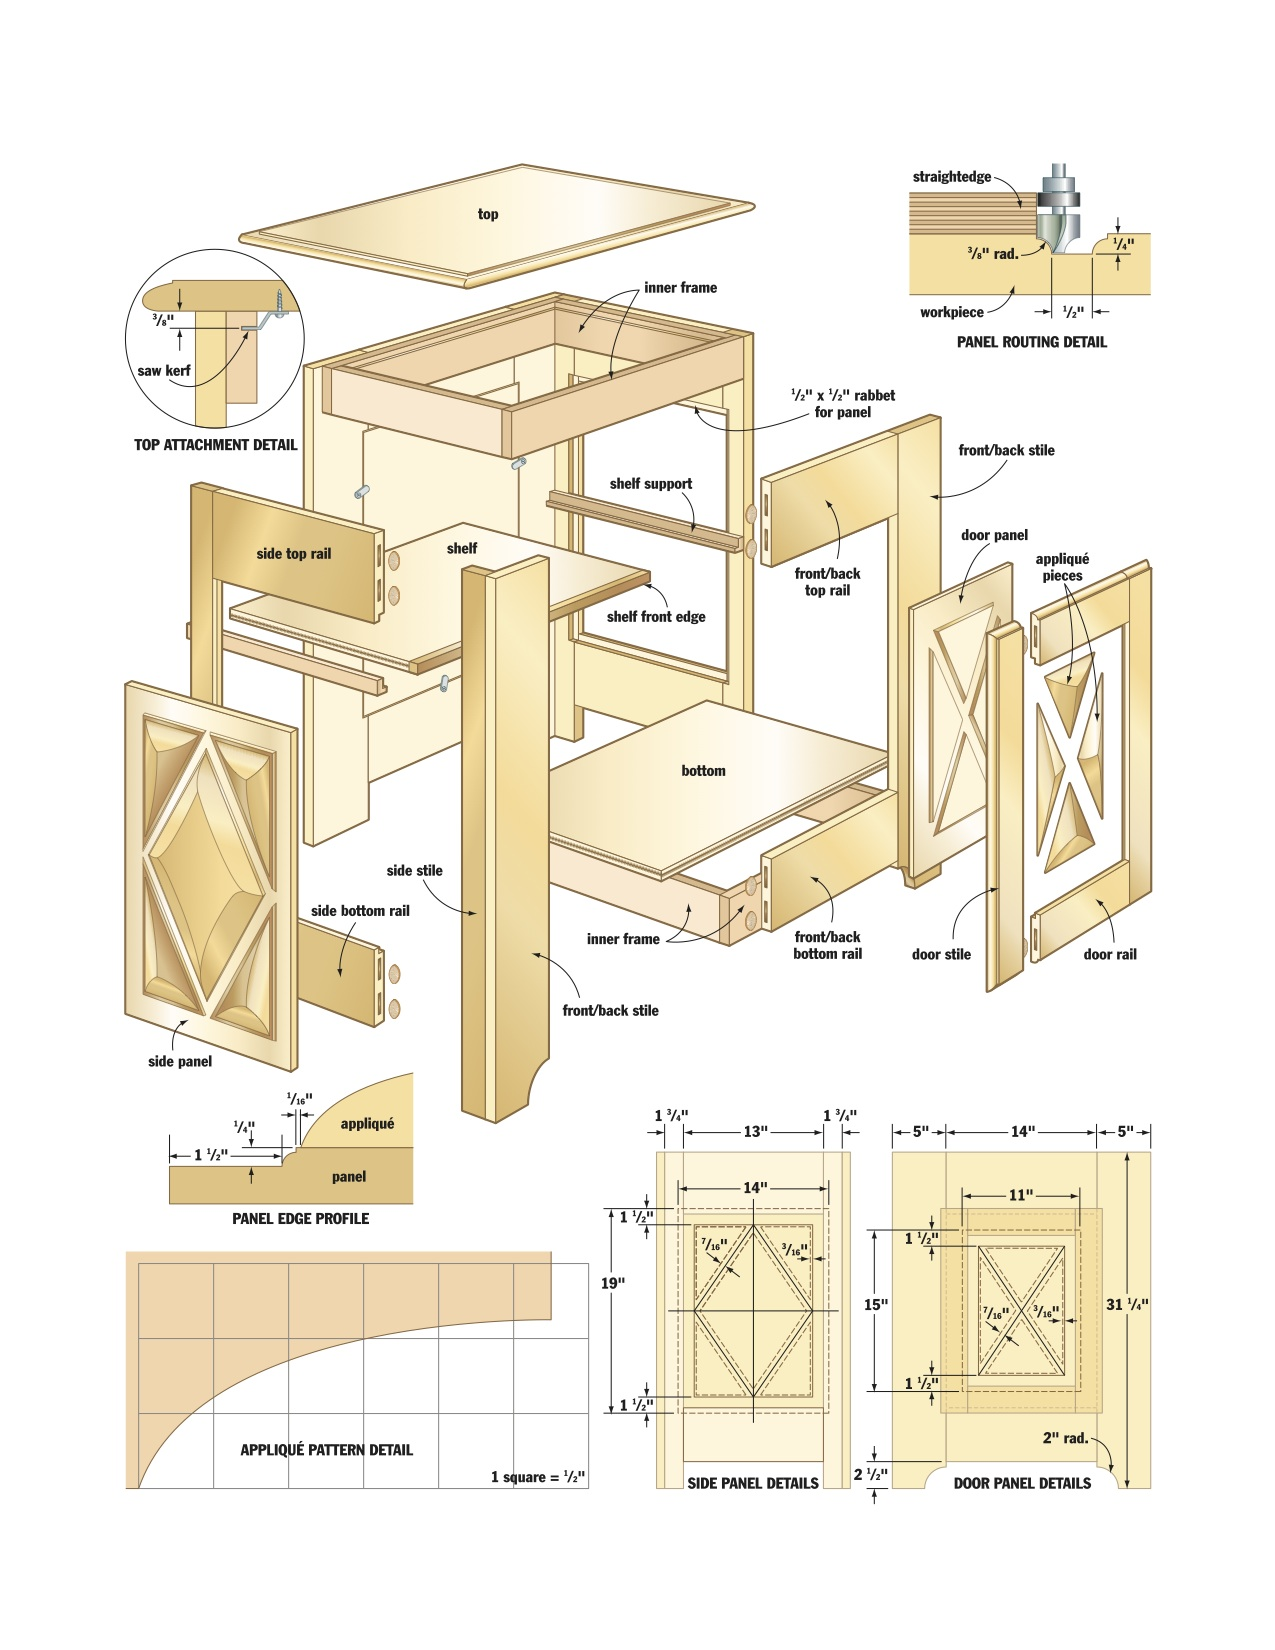 French Canadian cabinet woodworking plans - WoodShop Plans